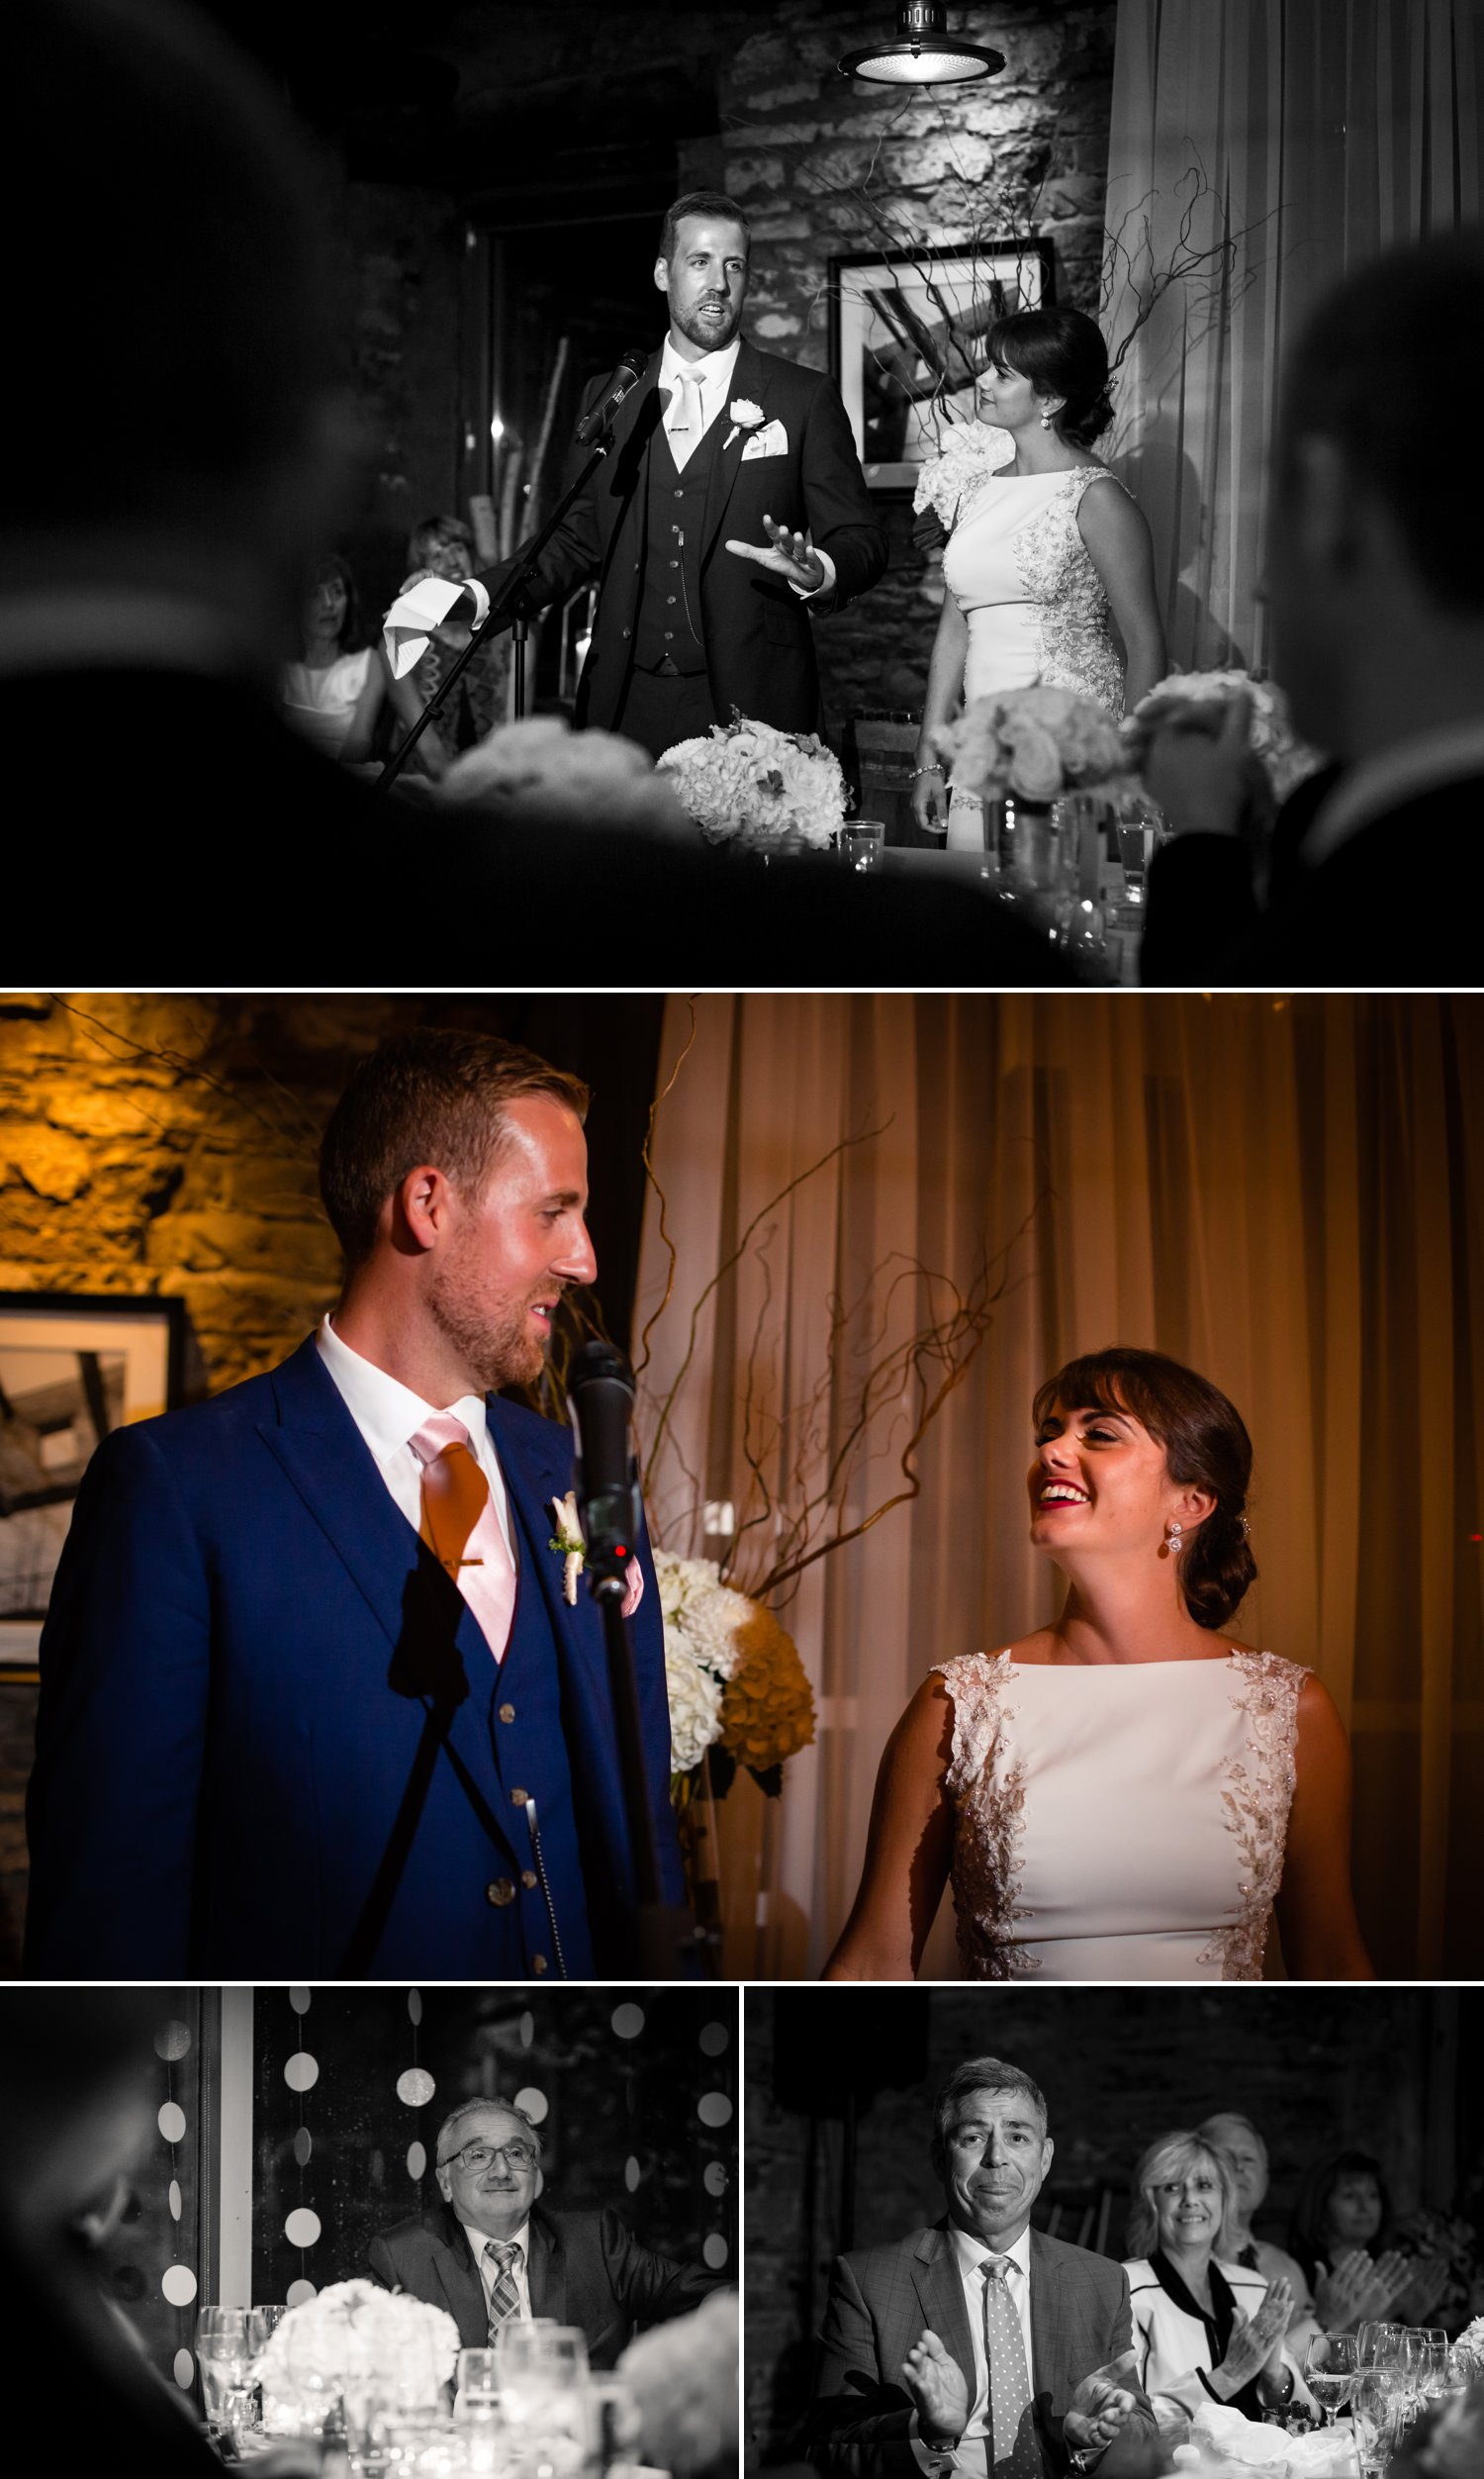 The bride and groom delivering their wedding speech during their wedding reception at The Mill St Brew Pub in Ottawa